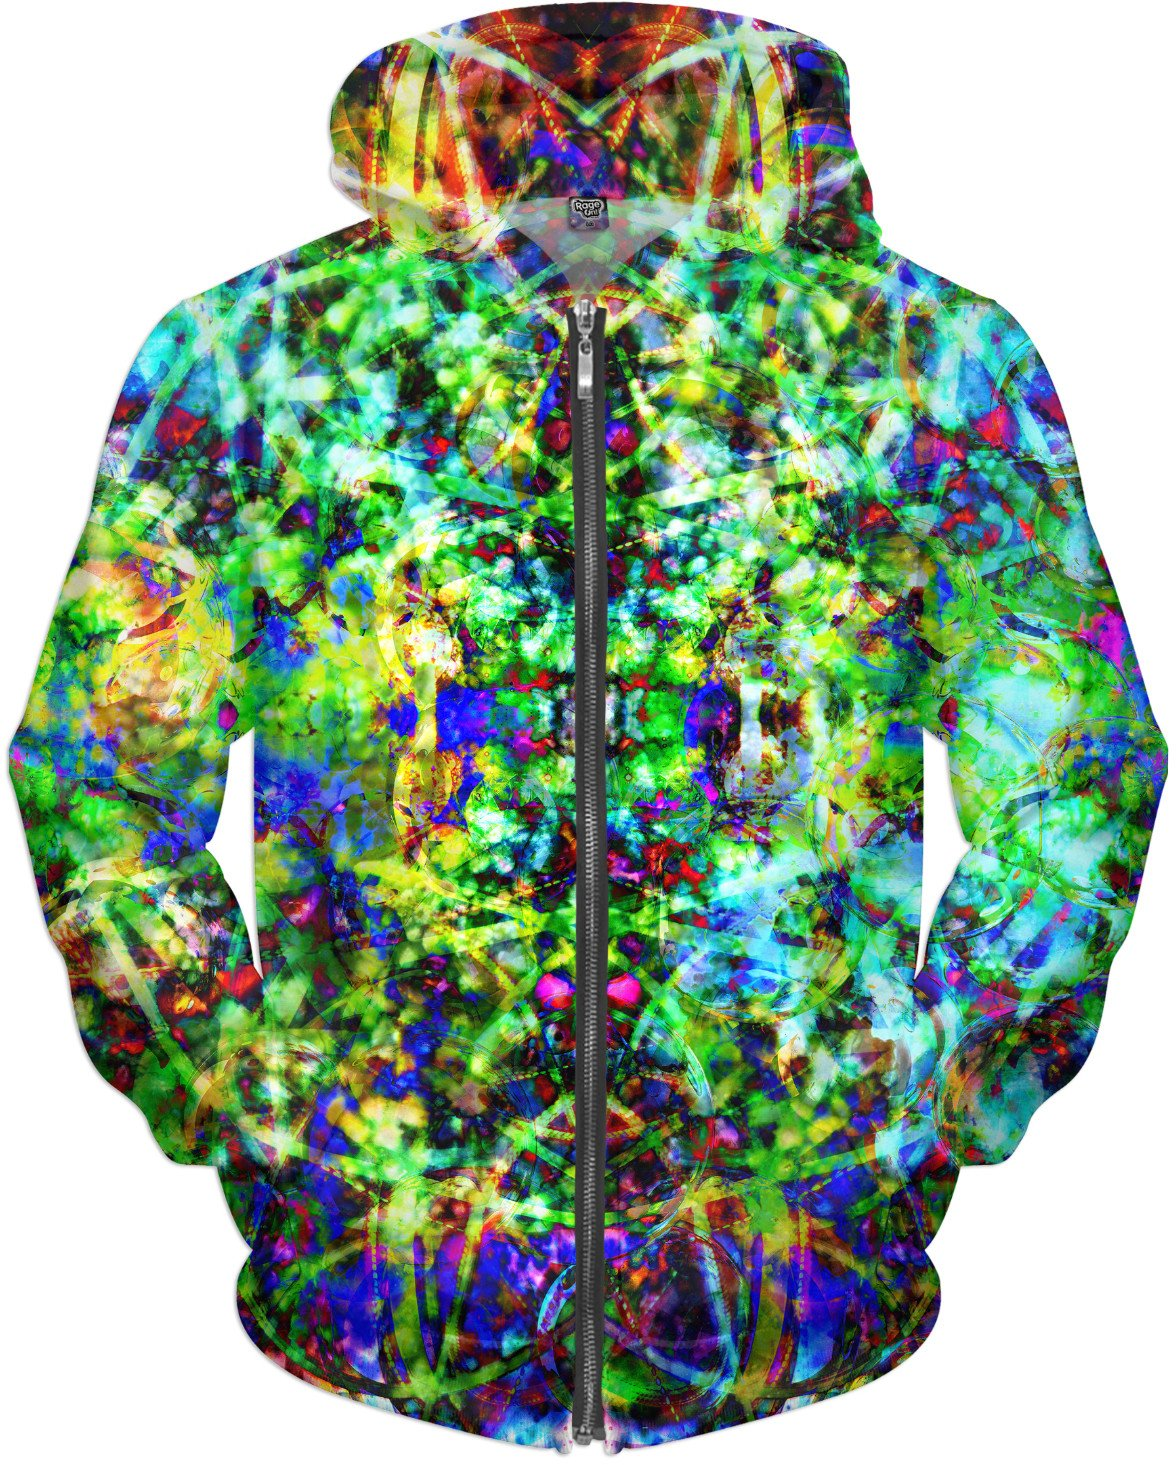 Contemporary Light Portal 12 Hoodie - TShirtsRUS.co